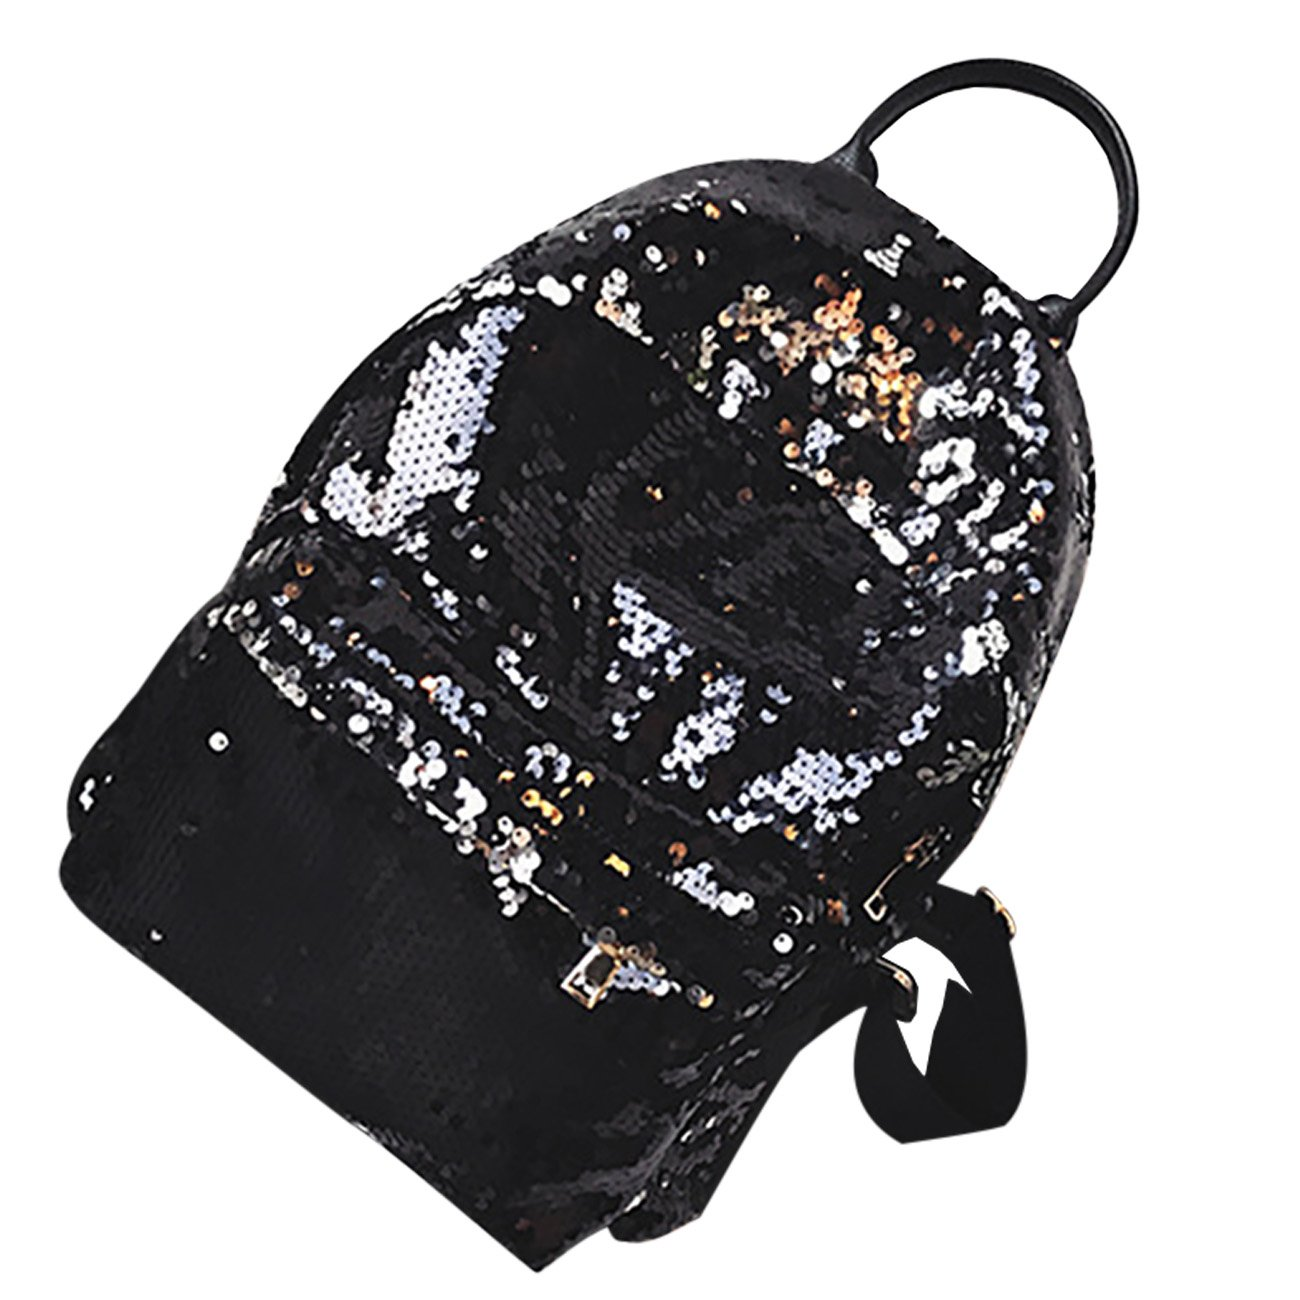 Black THEE Backpack Purse Bling Sequins School Bags for Teens Women